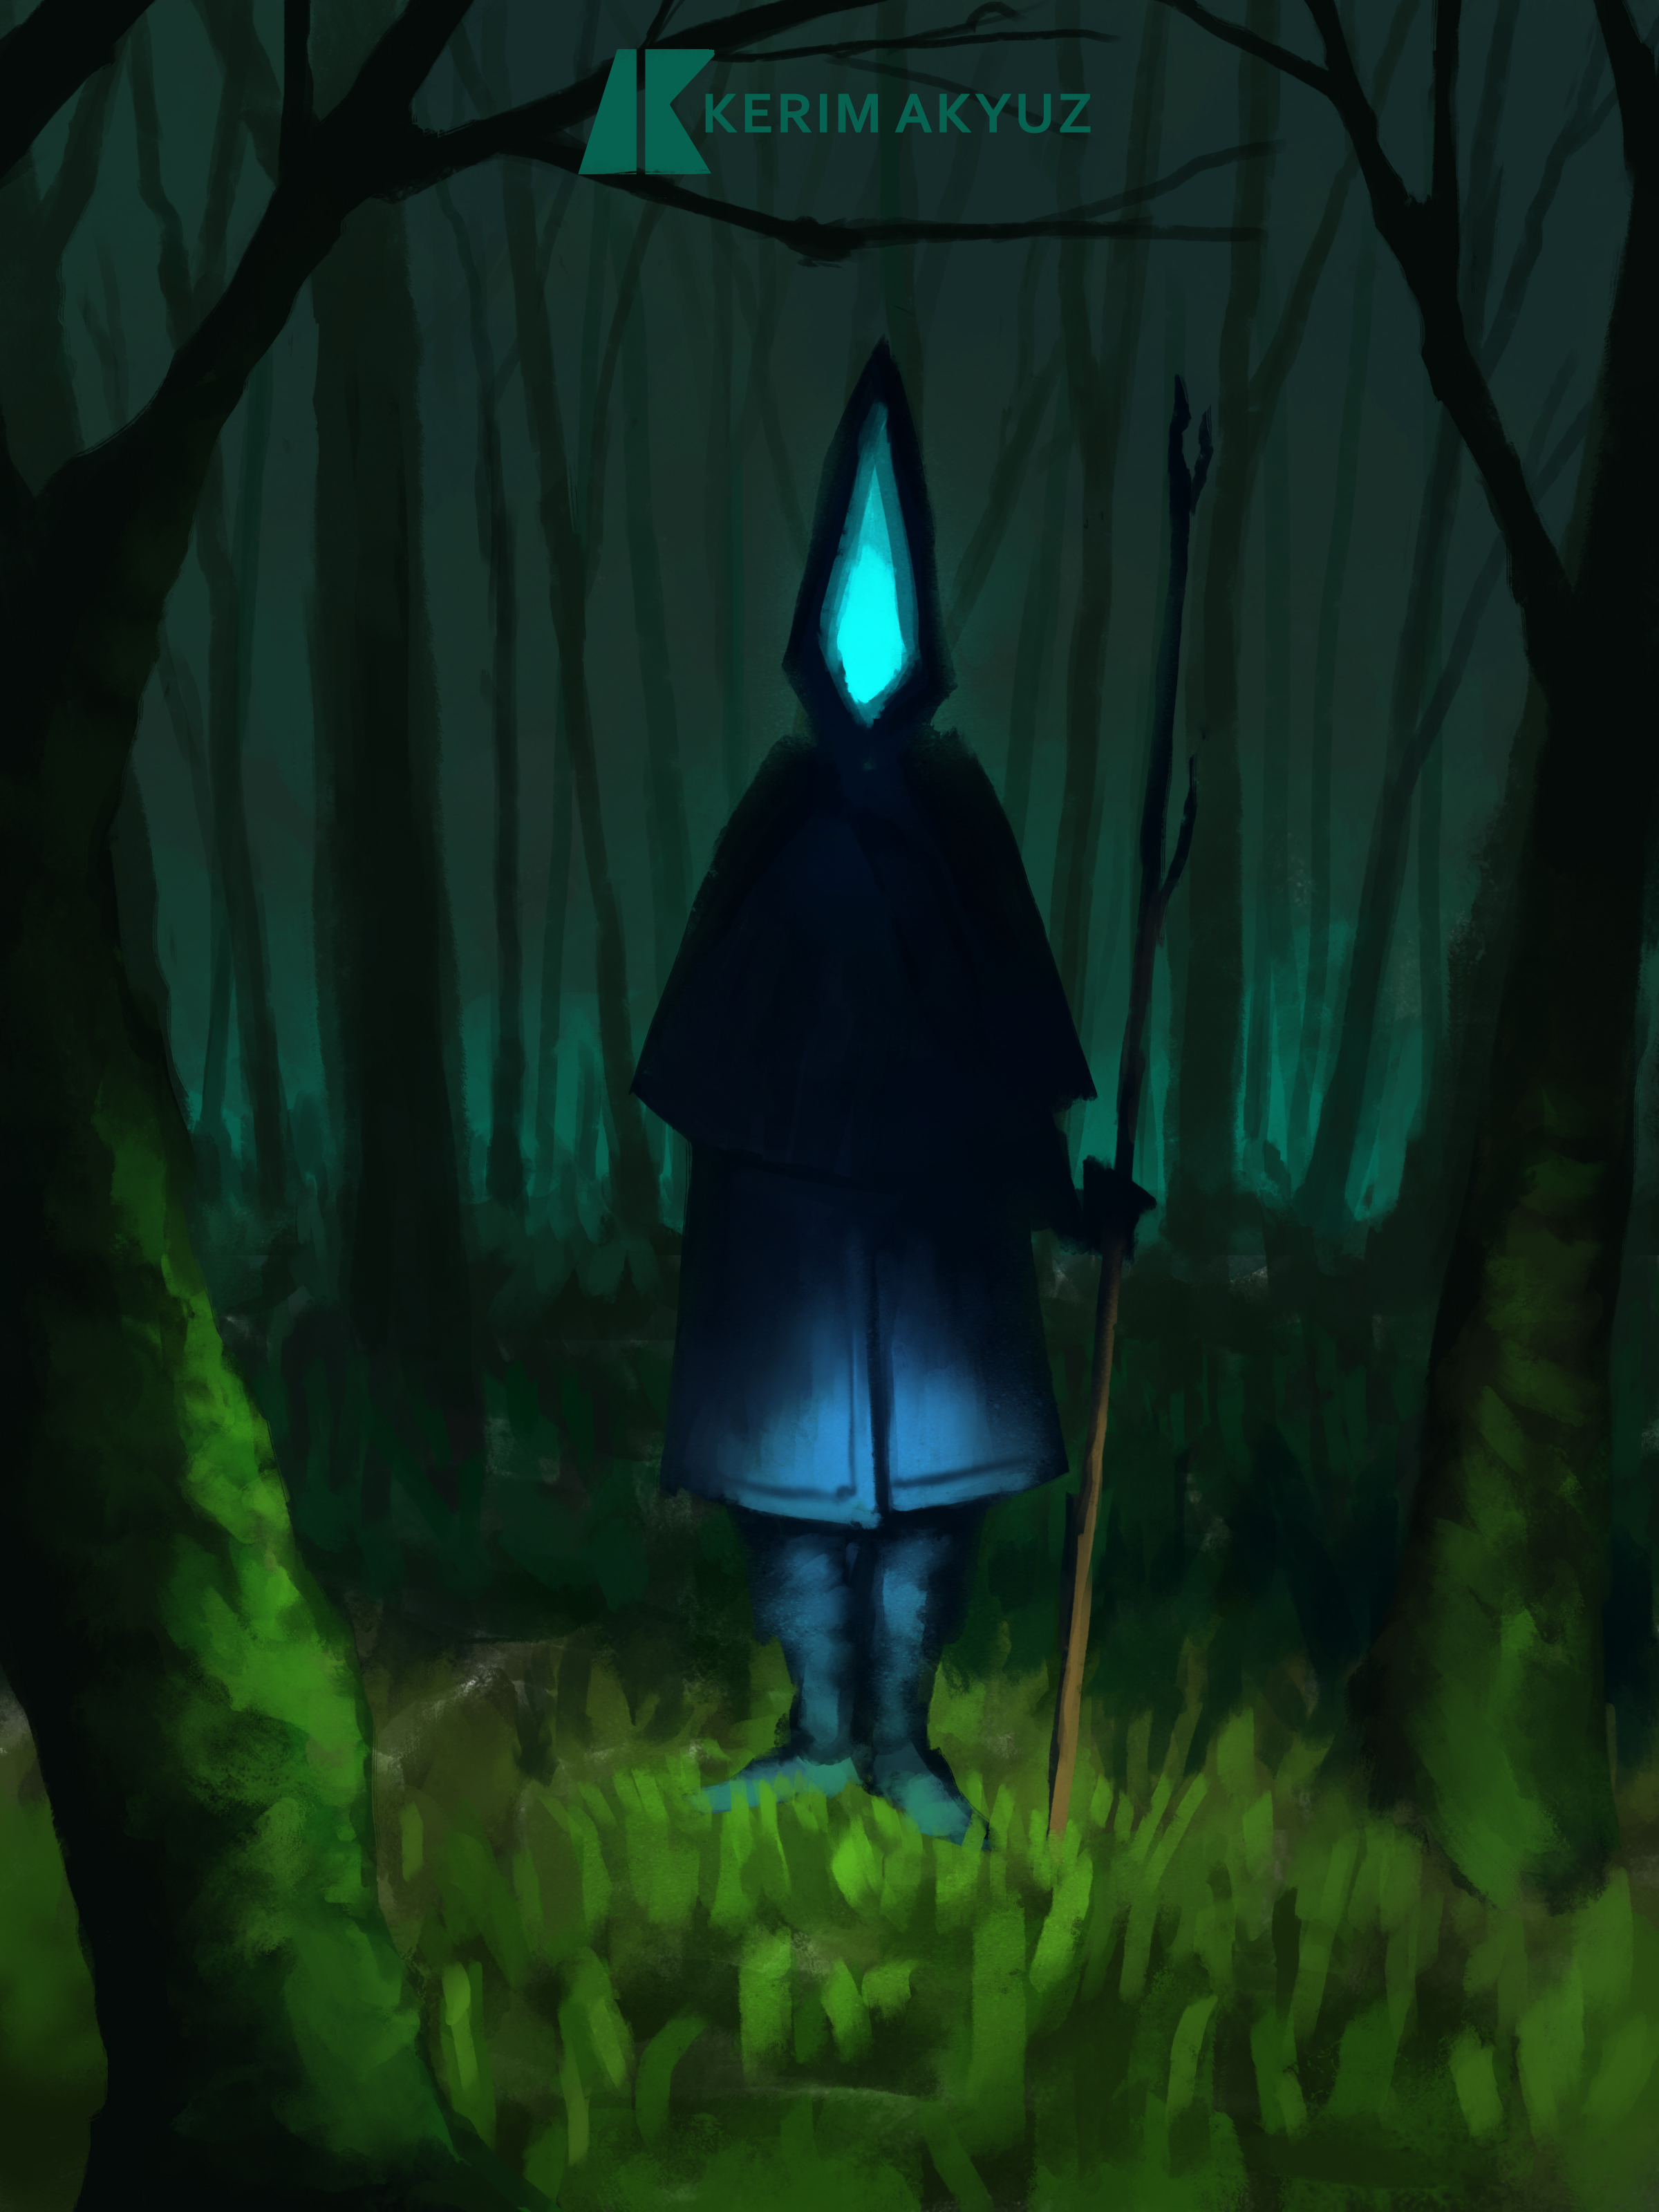 Daily Imagination #159 - Forest Watcher